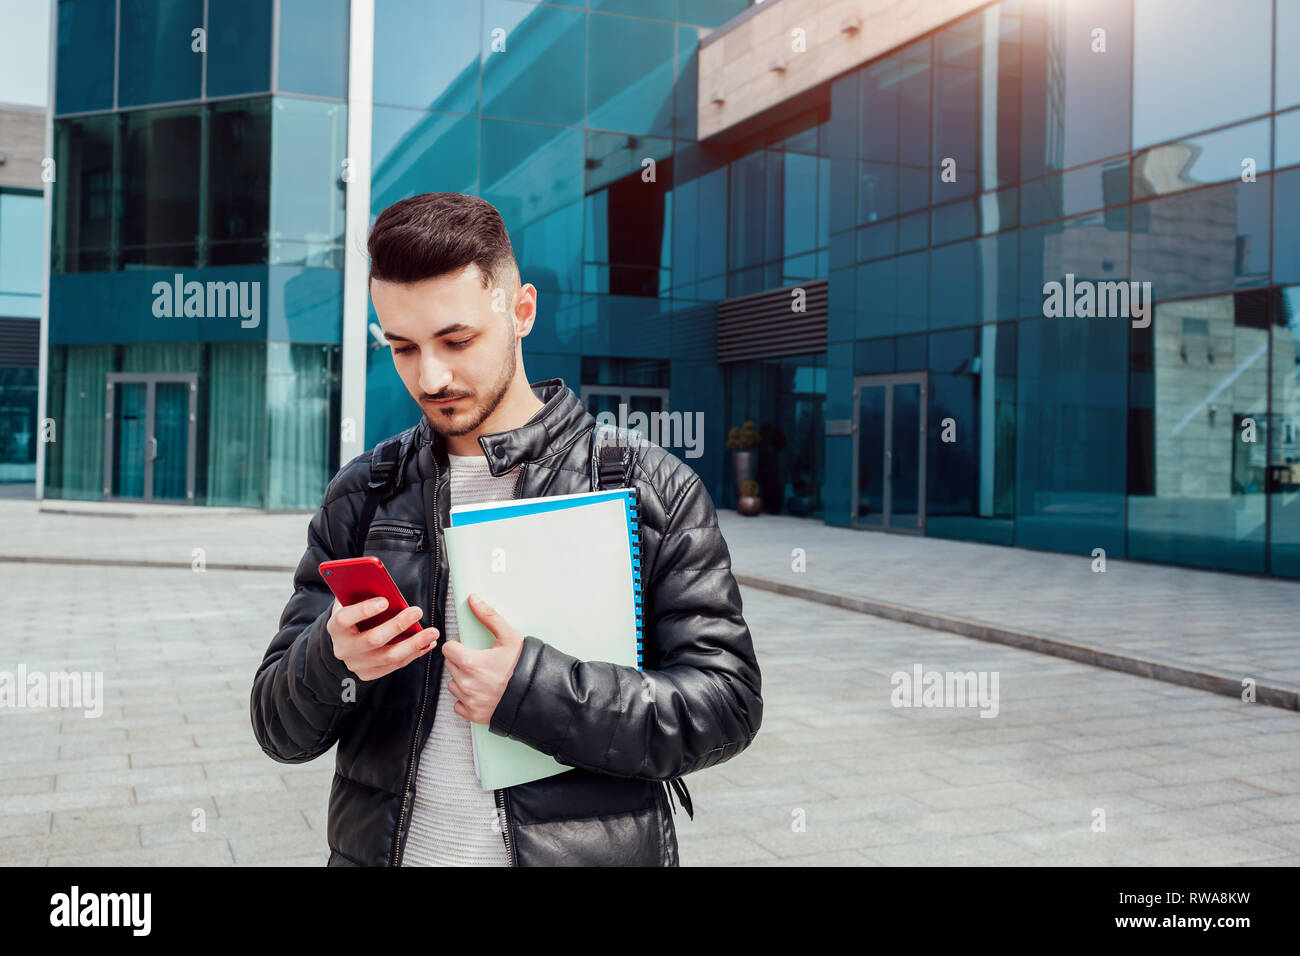 Happy arabian student using smartphone outside. Confident guy looks at phone in front of modern building after classes. Man holding copybooks - Stock Image